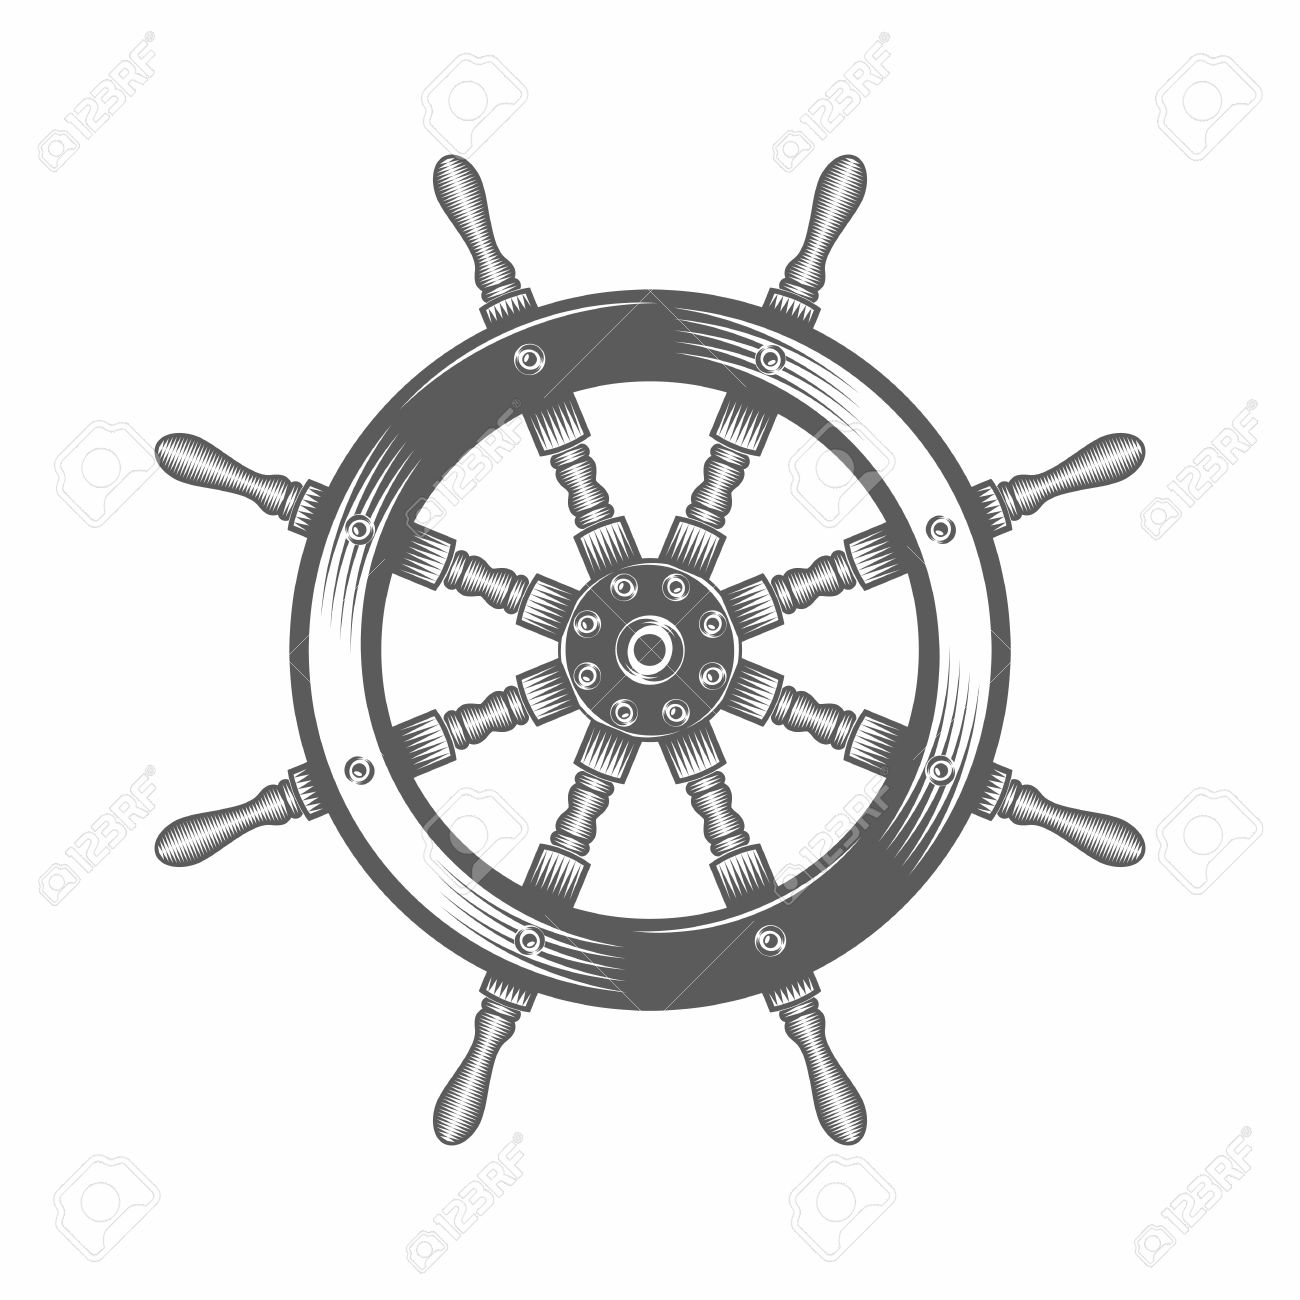 1300x1300 Vector Illustration Of A Steering Wheel Ship In The Old Fashioned